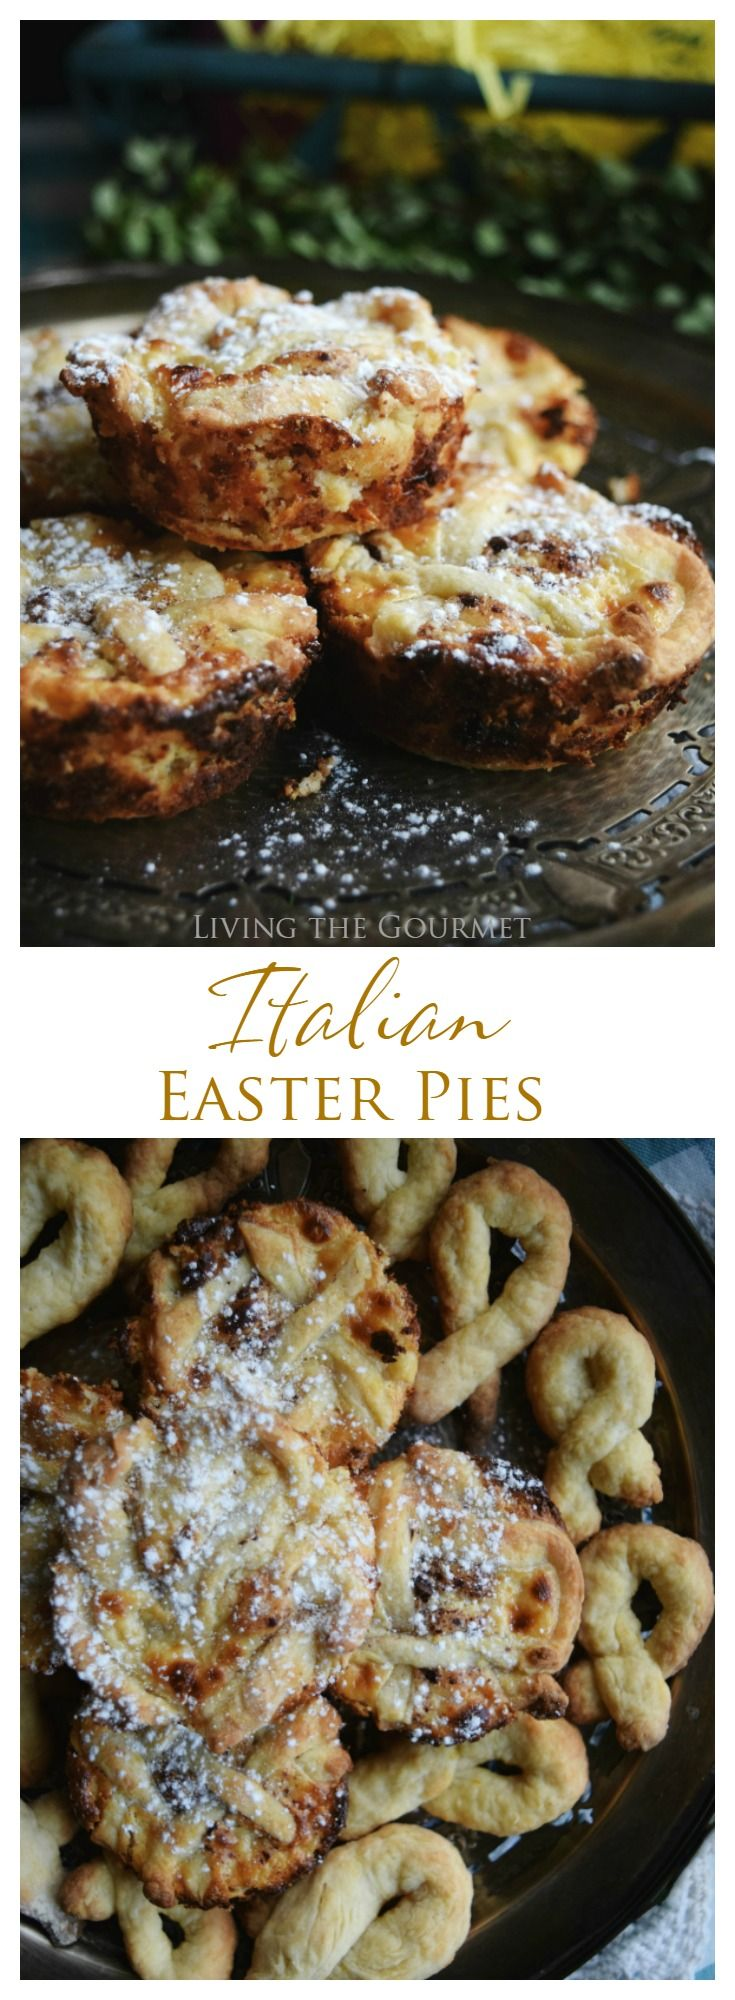 """Italian Easter Pies are a traditional dessert made of a sweet whipped ricotta filling that's baked over a flaky crust! While I am a fervent classicalist, perhaps one of my favorite lines of dialogue comes from the movie Blade Runner, specifically Roy Batty's brief exchange at the end of the film, which ran """"I've seen..."""